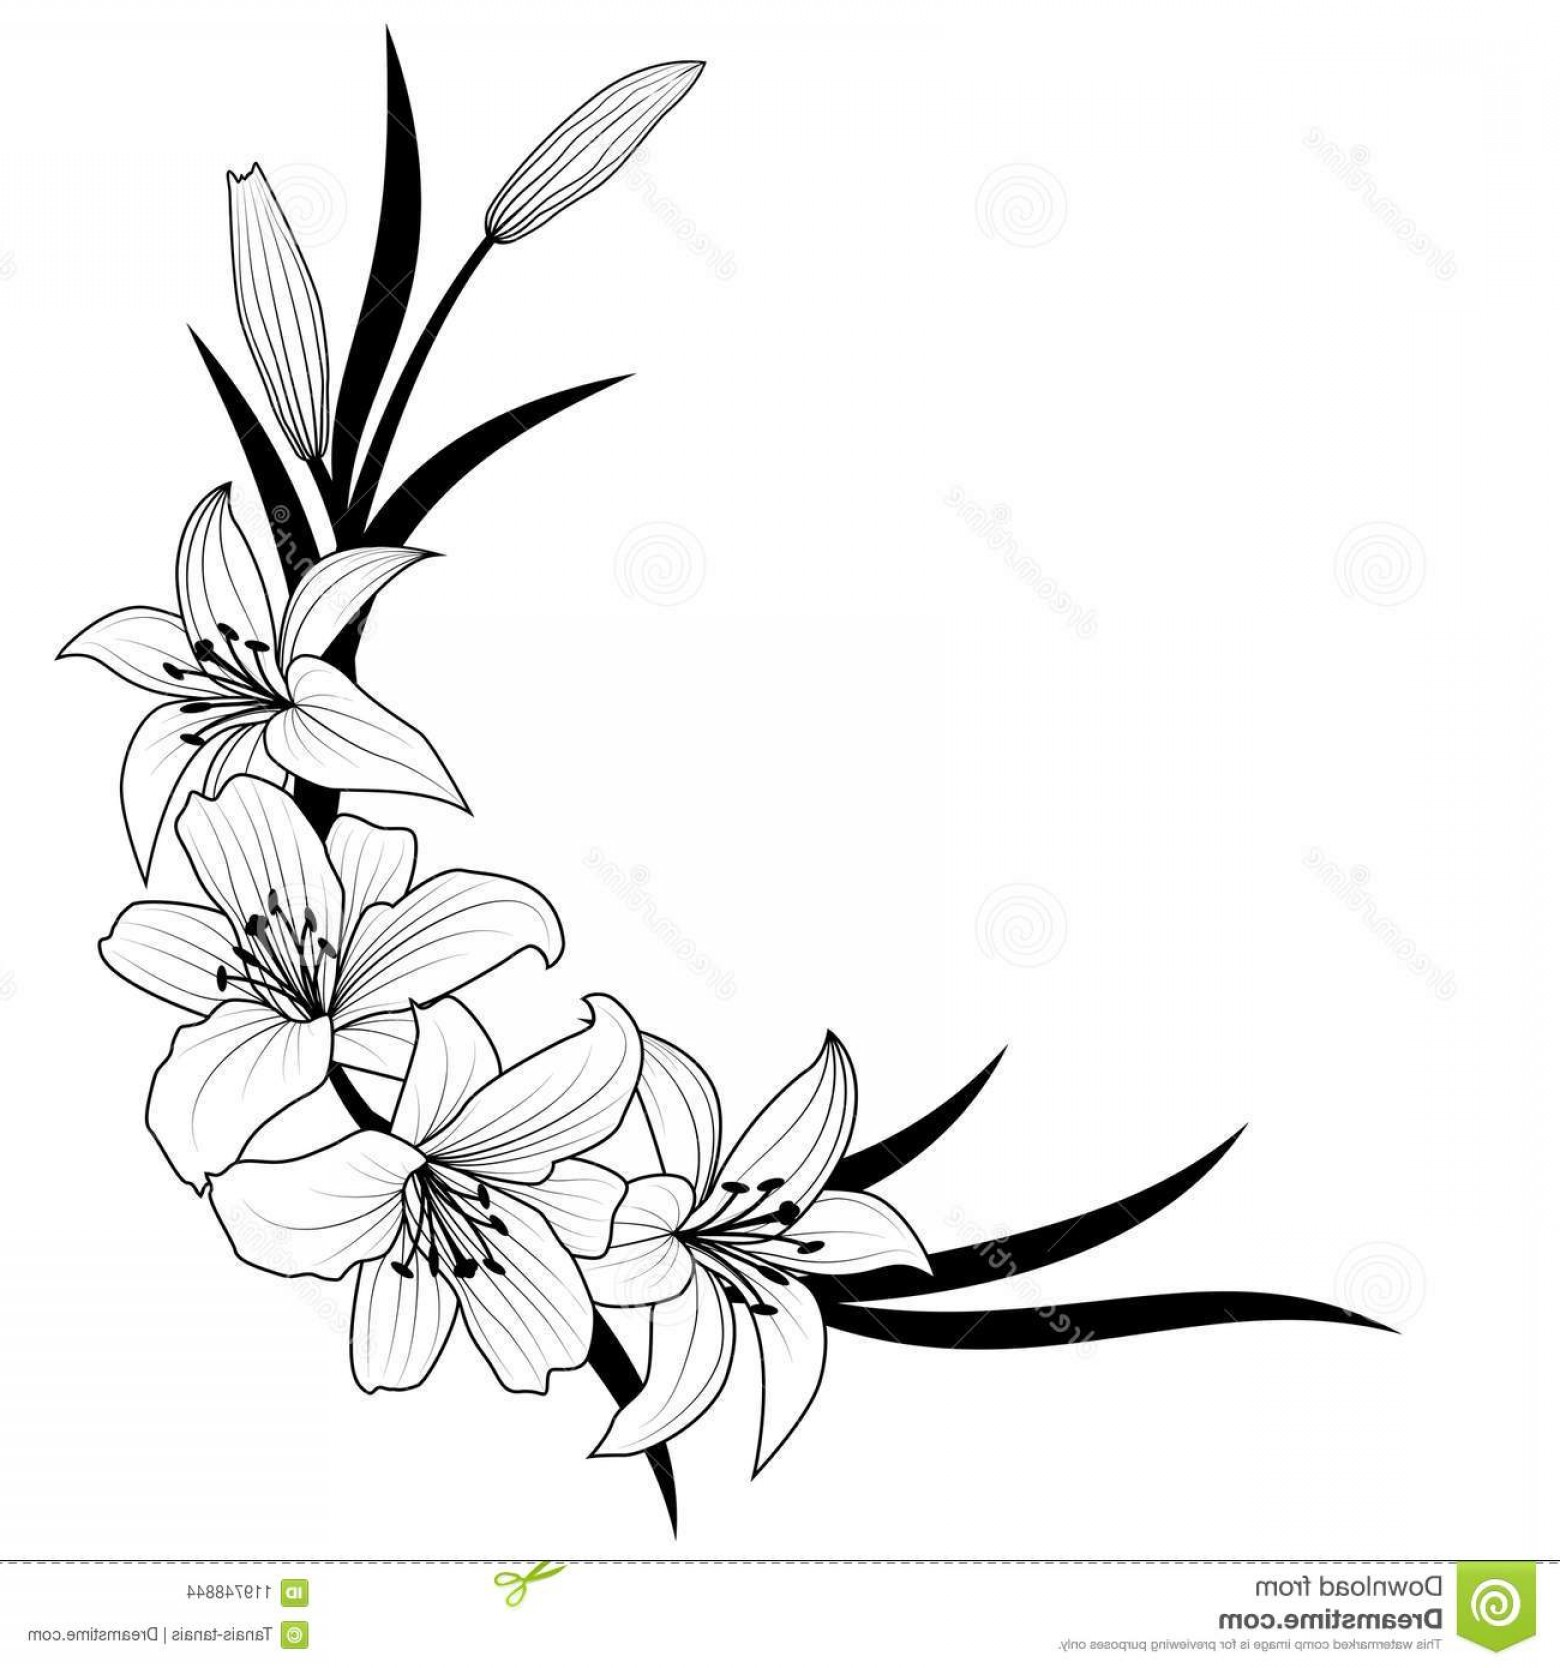 Lily Vector Art: Lily Flower Vector Illustration Black White Colors Image